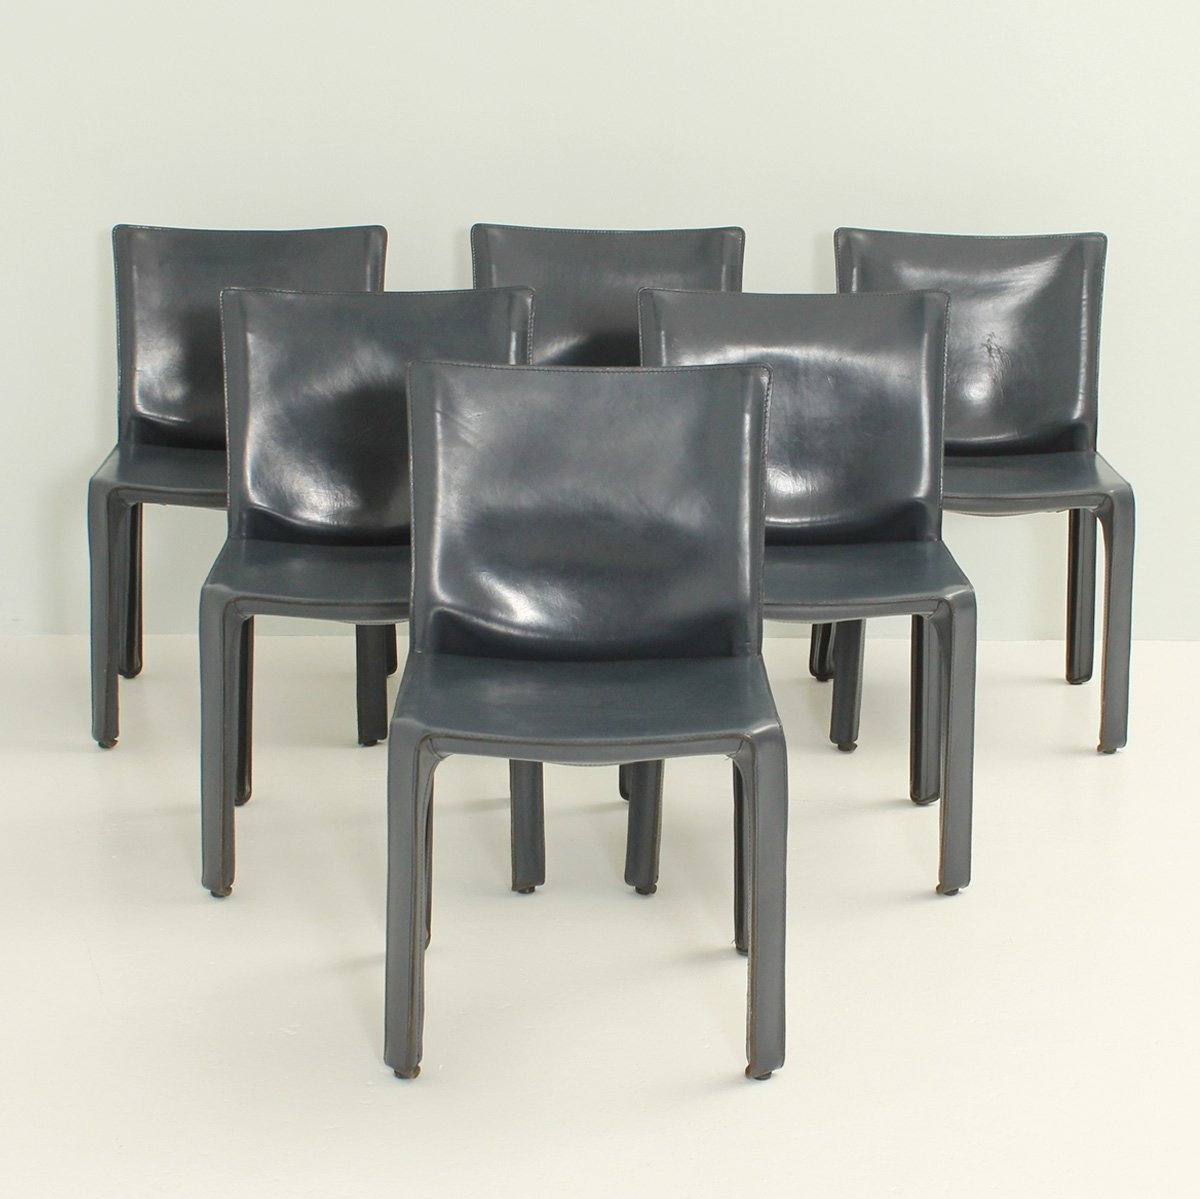 Set Of Six Cab Chairs By Mario Bellini In Dark Blue Leather 94770